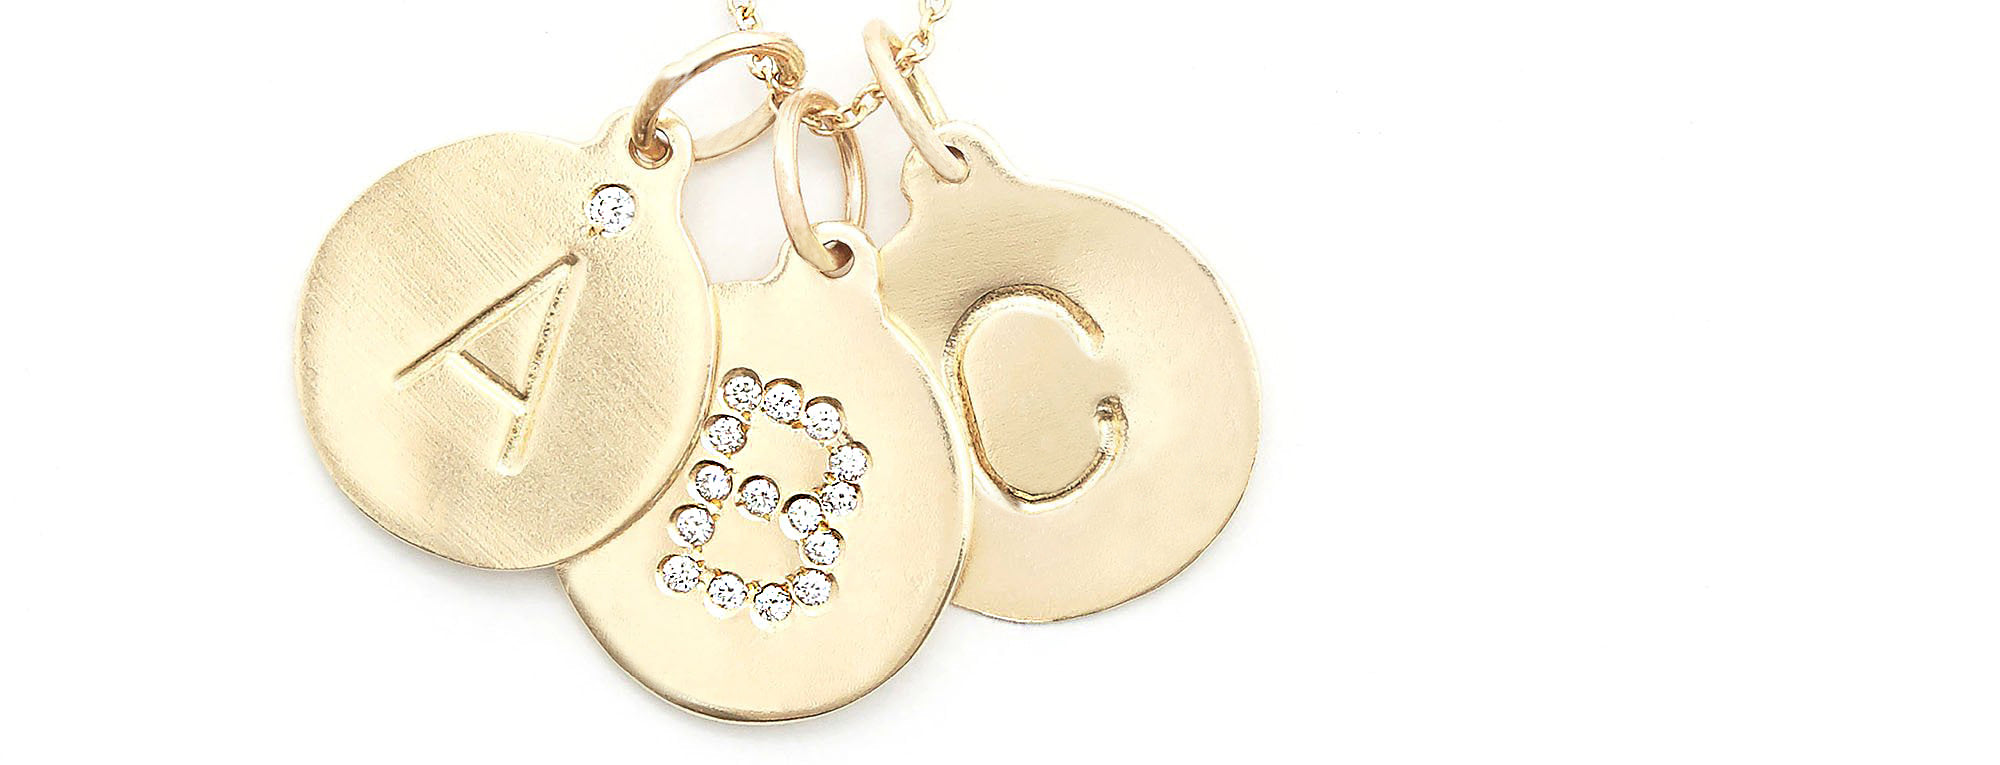 Alphabet charms for necklaces and bracelets. Solid 14k gold with diamond accents. Shop now.